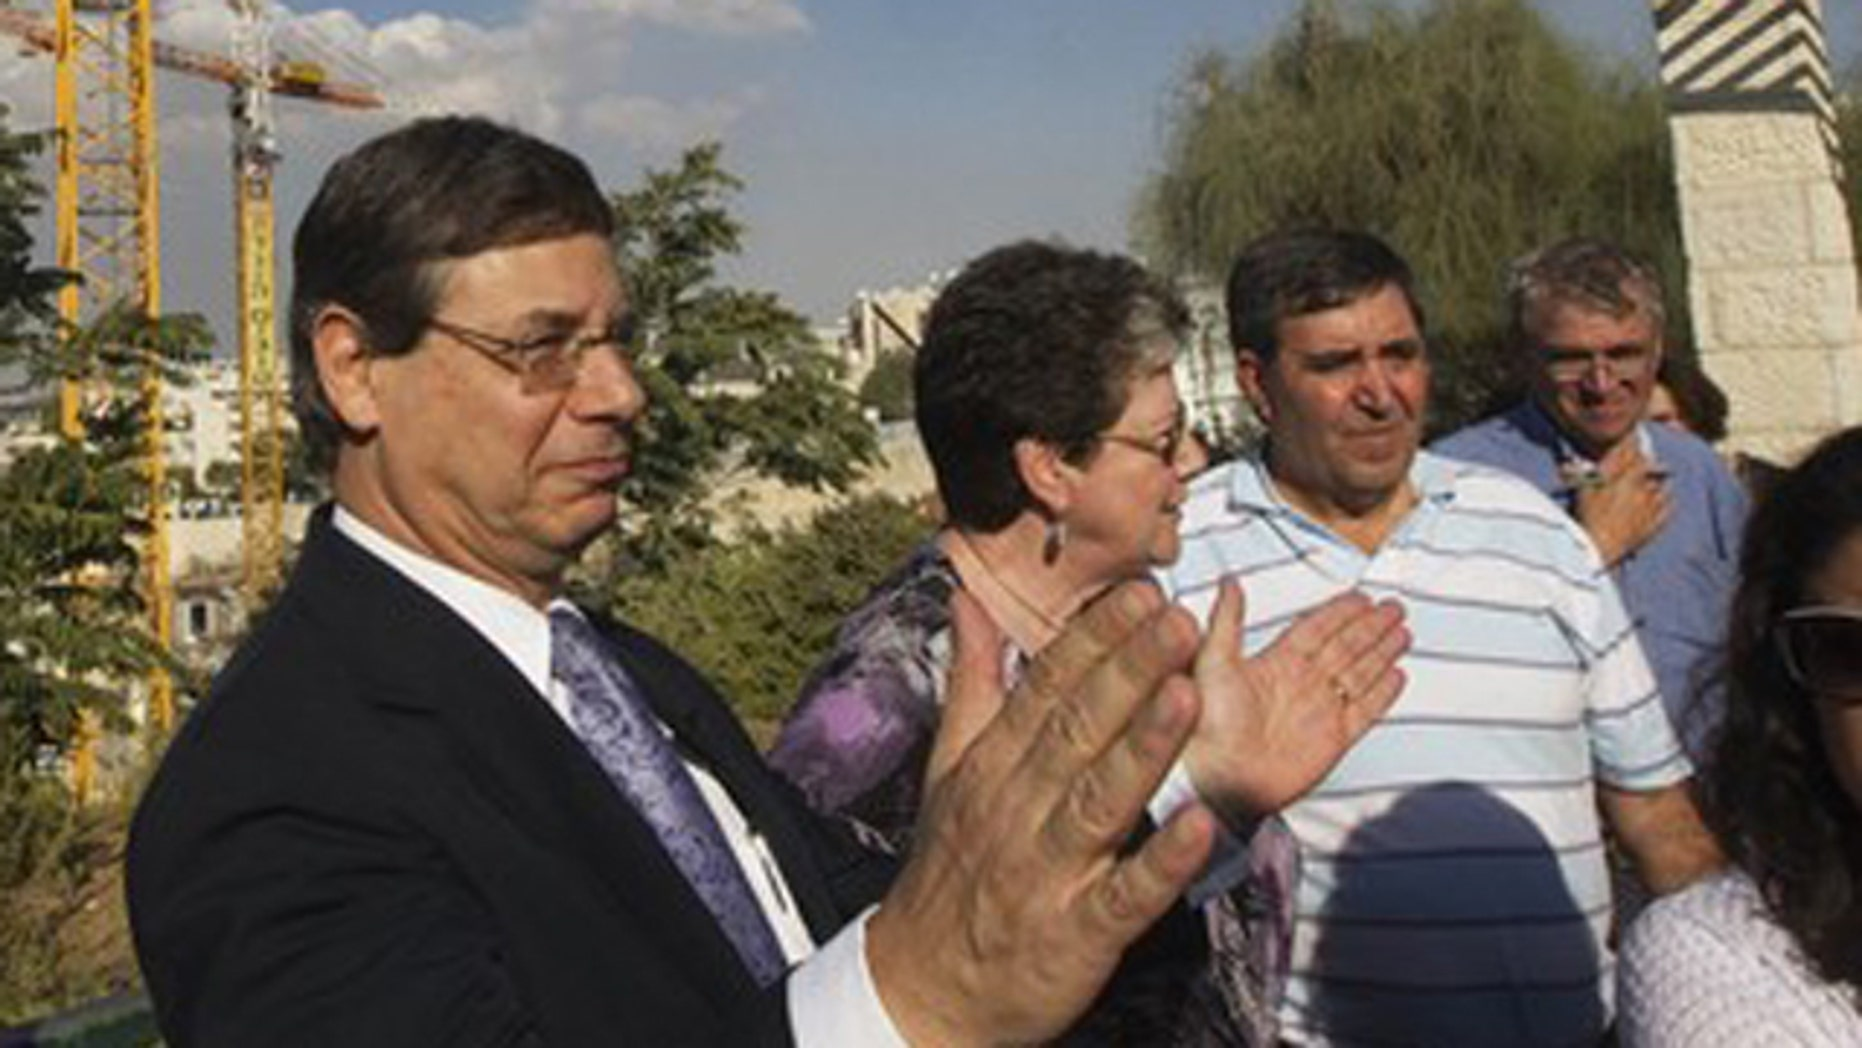 FILE: Israel's Deputy Foreign Minister Danny Ayalon (C) gestures as he speaks to the media during a tour of Gilo, a Jewish settlement on land Israel captured in 1967 and annexed to its Jerusalem municipality.